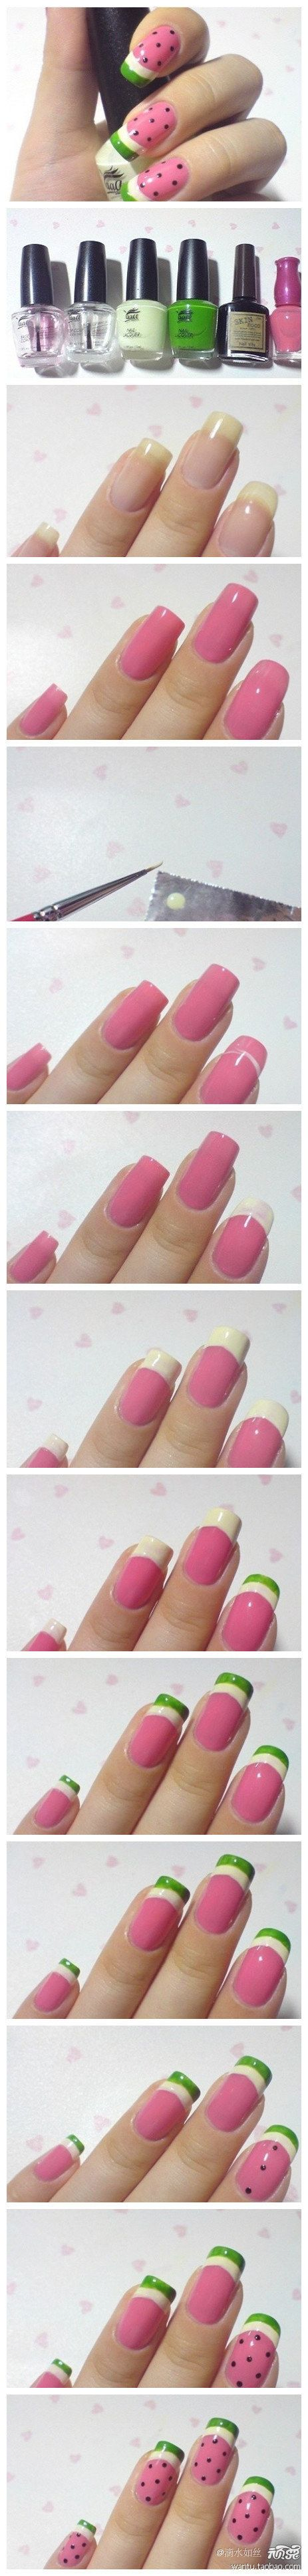 Watermelon Nail Art! Great for summer time! Good luck <3